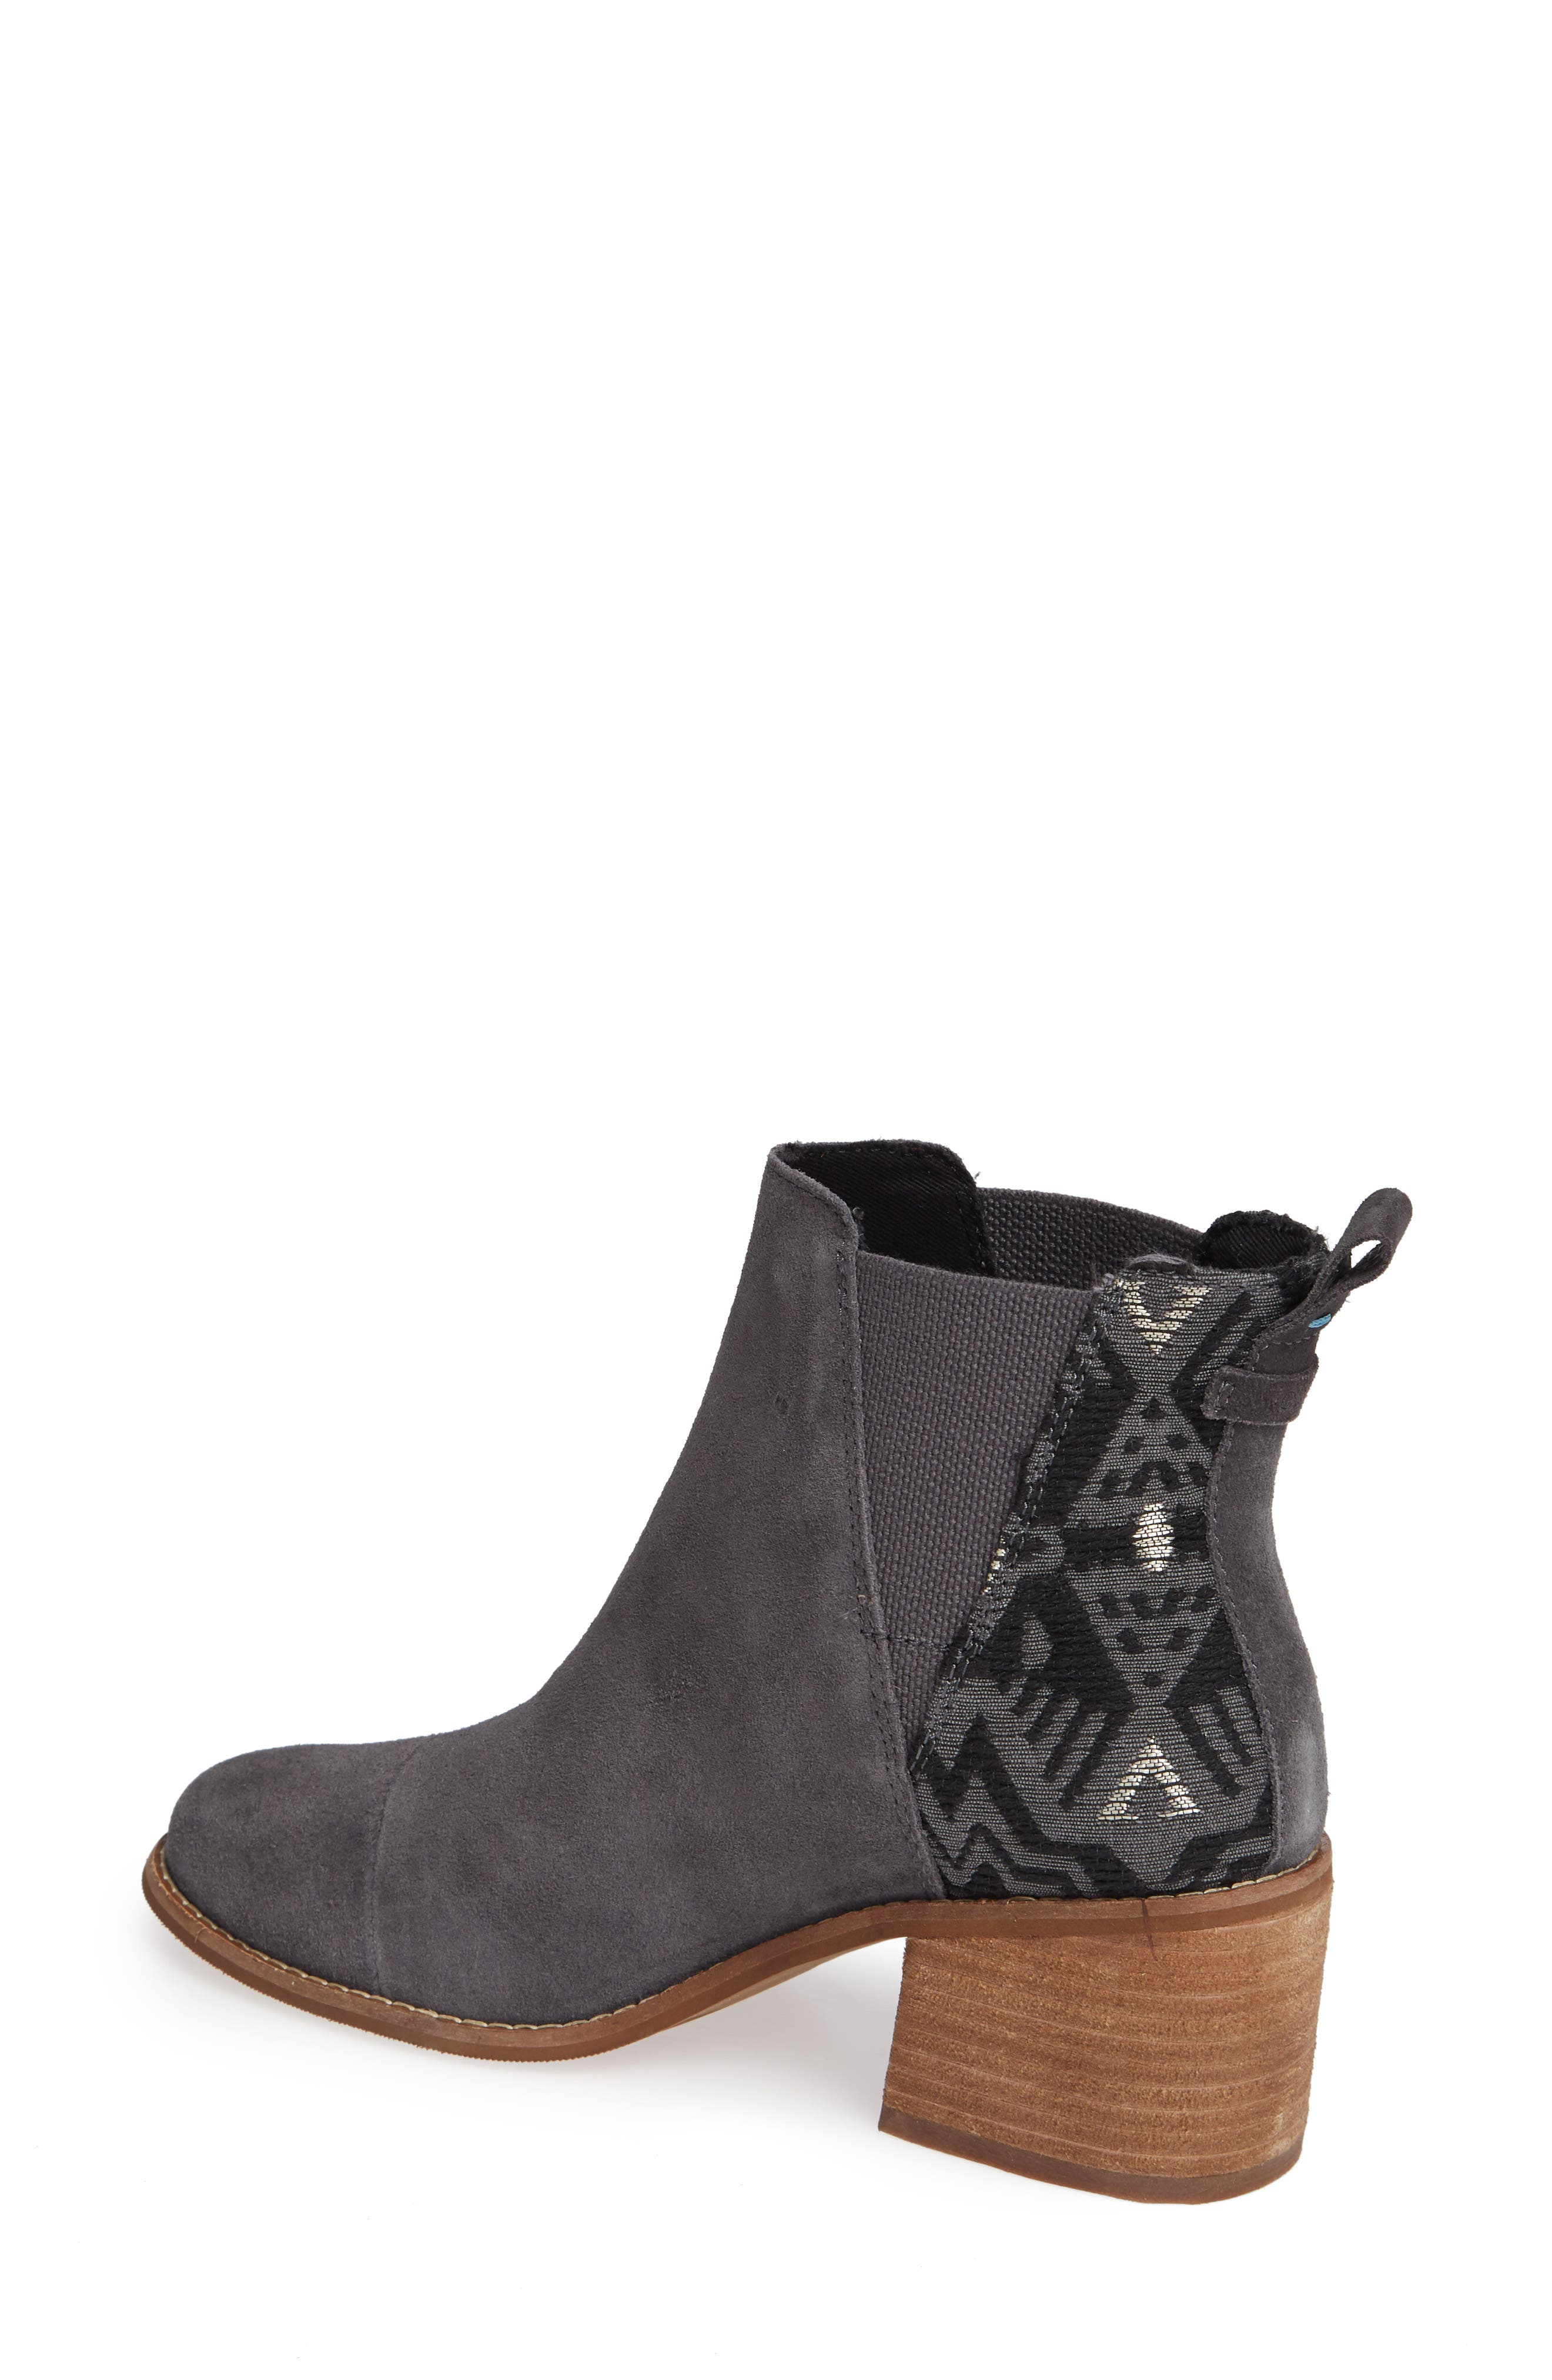 Esme Bootie,                             Alternate thumbnail 2, color,                             FORGED IRON SUEDE